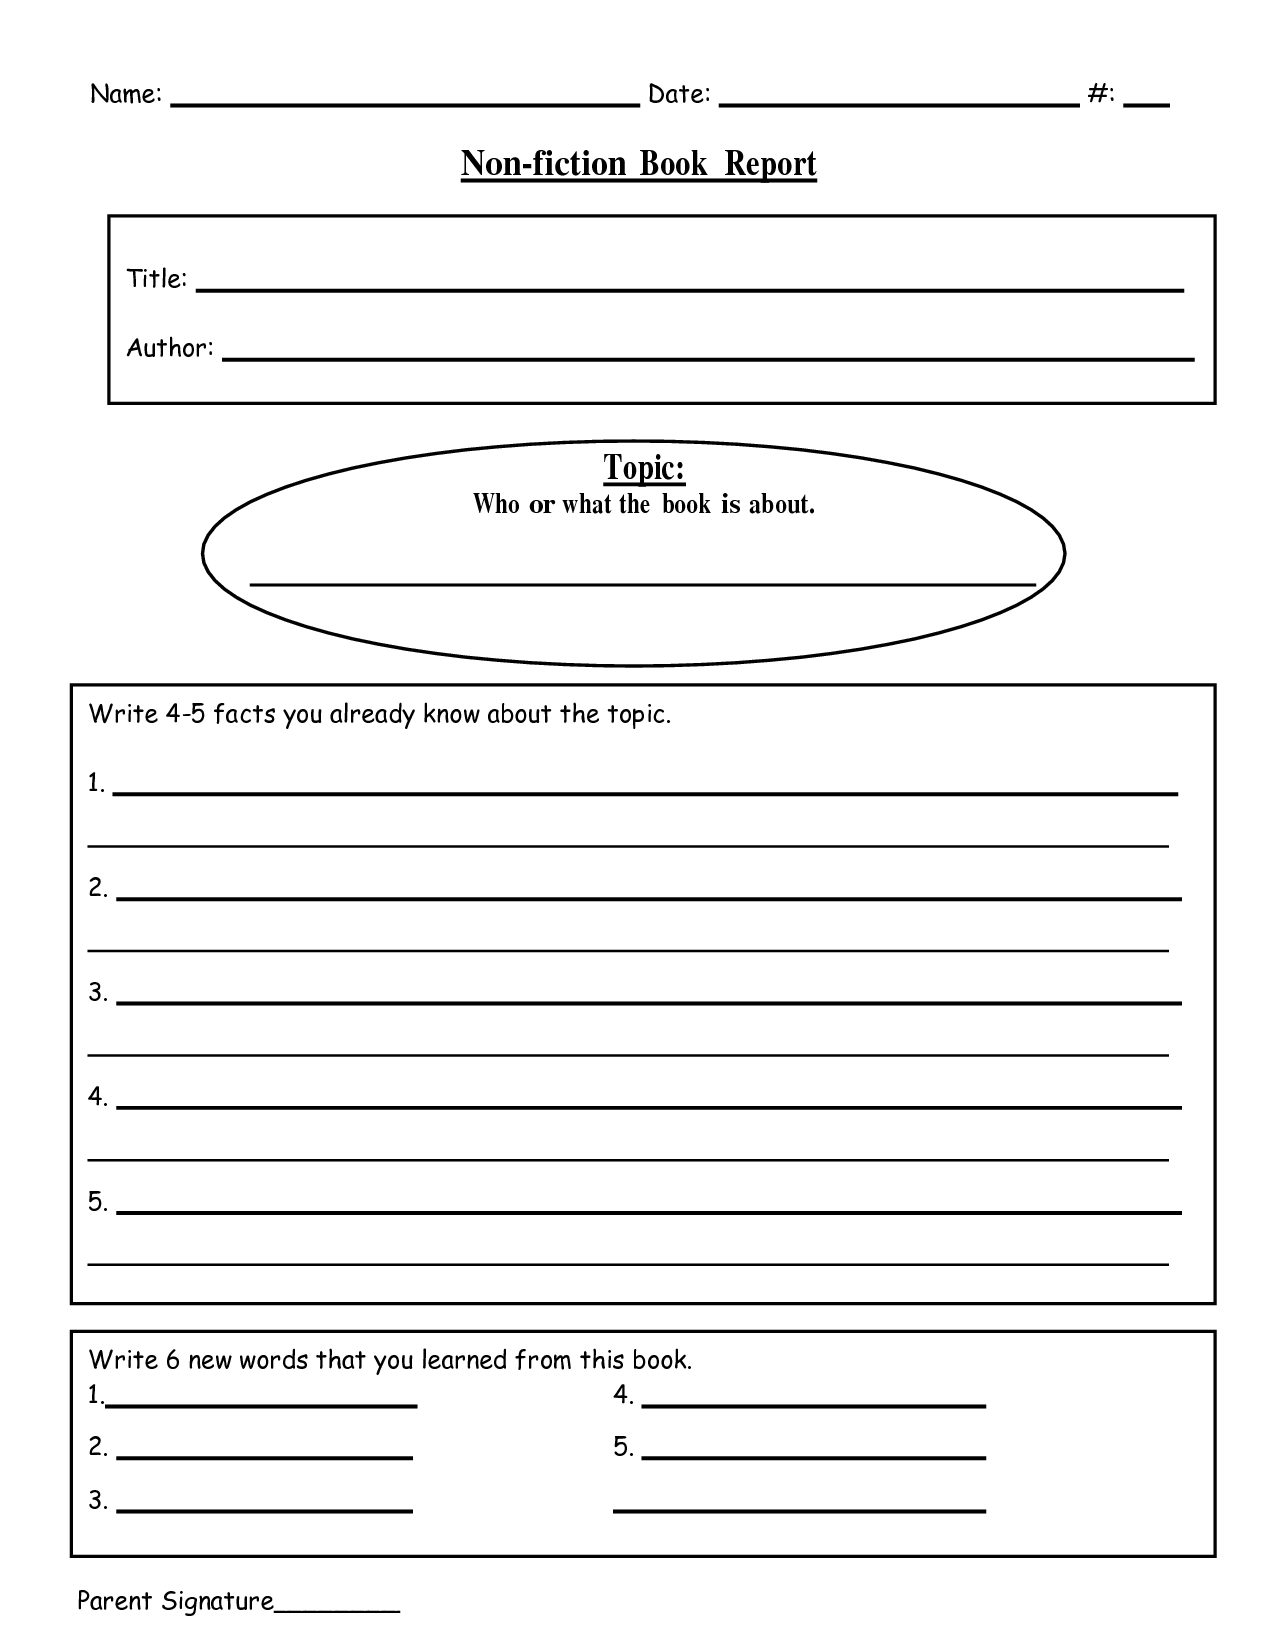 Free Printable Book Report Templates  NonFiction Book ReportDoc